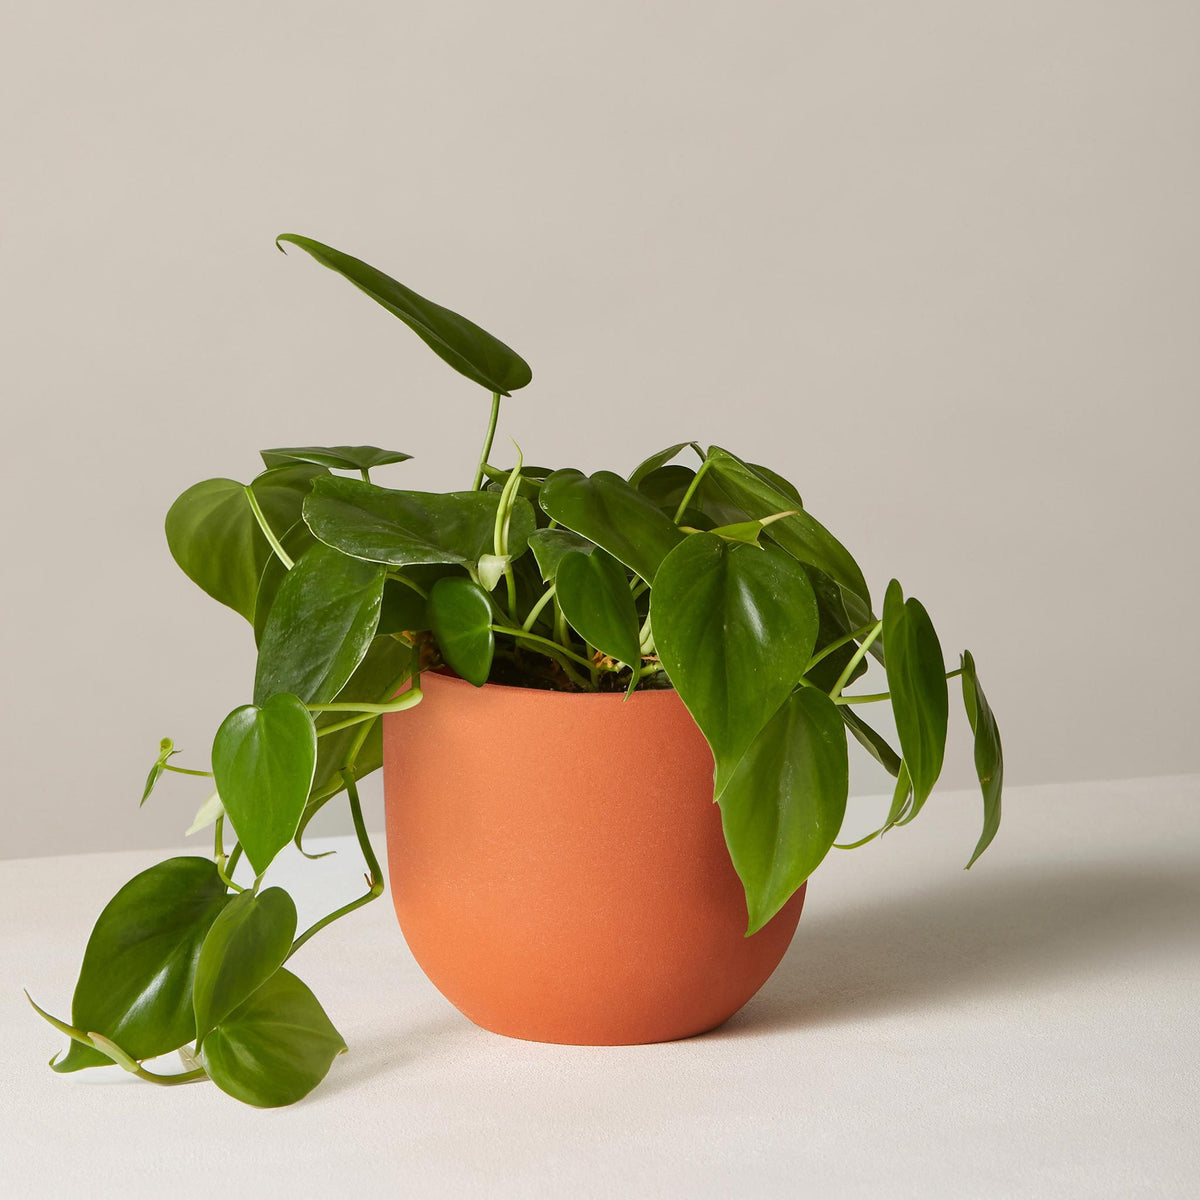 Philodendron Green in Small Grant Planter / Terracotta